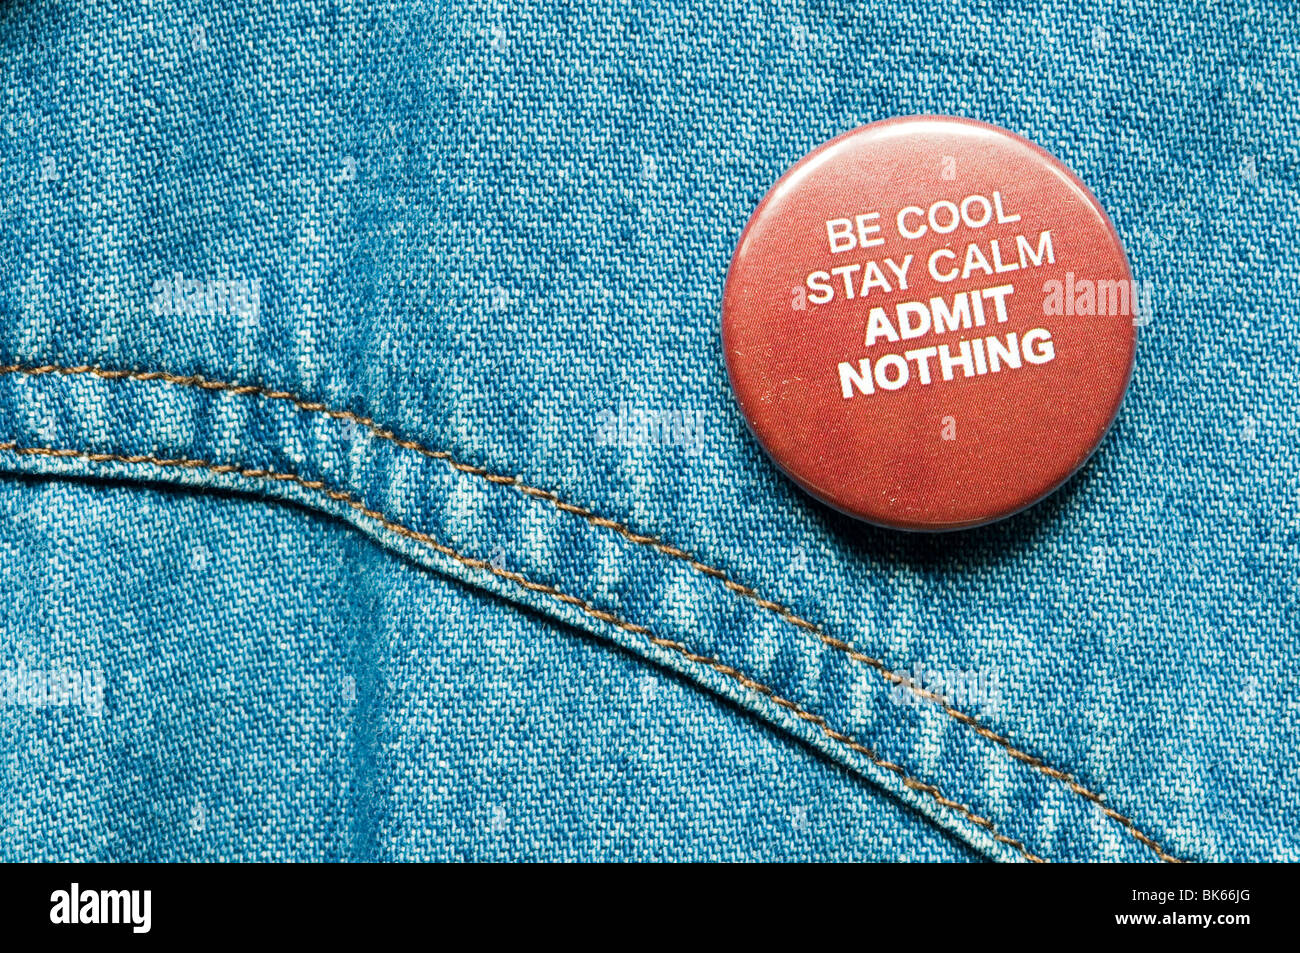 Be Cool Stay Calm Admit Nothing badge on denim jacket - Stock Image